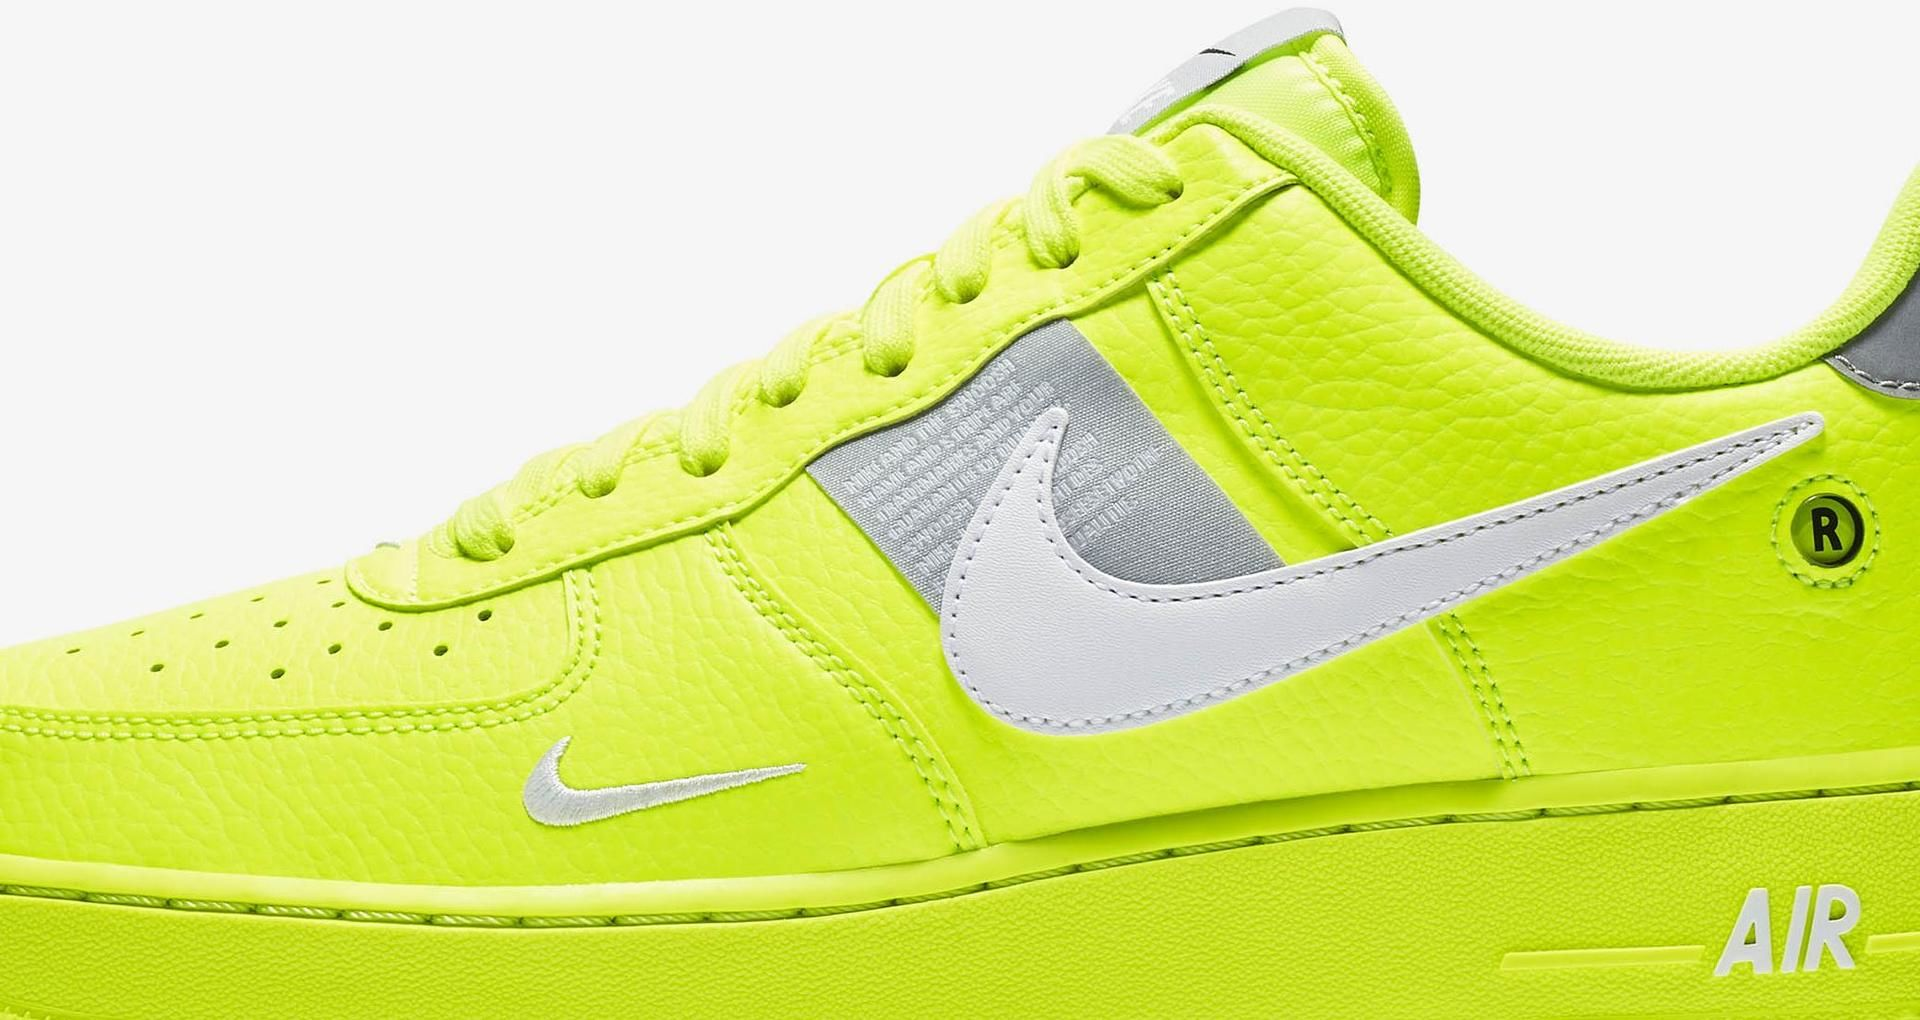 Nike 1 Wolf Force Release 'voltamp; Date Air Lv8 White' Utility Grey 8nwN0OXPk